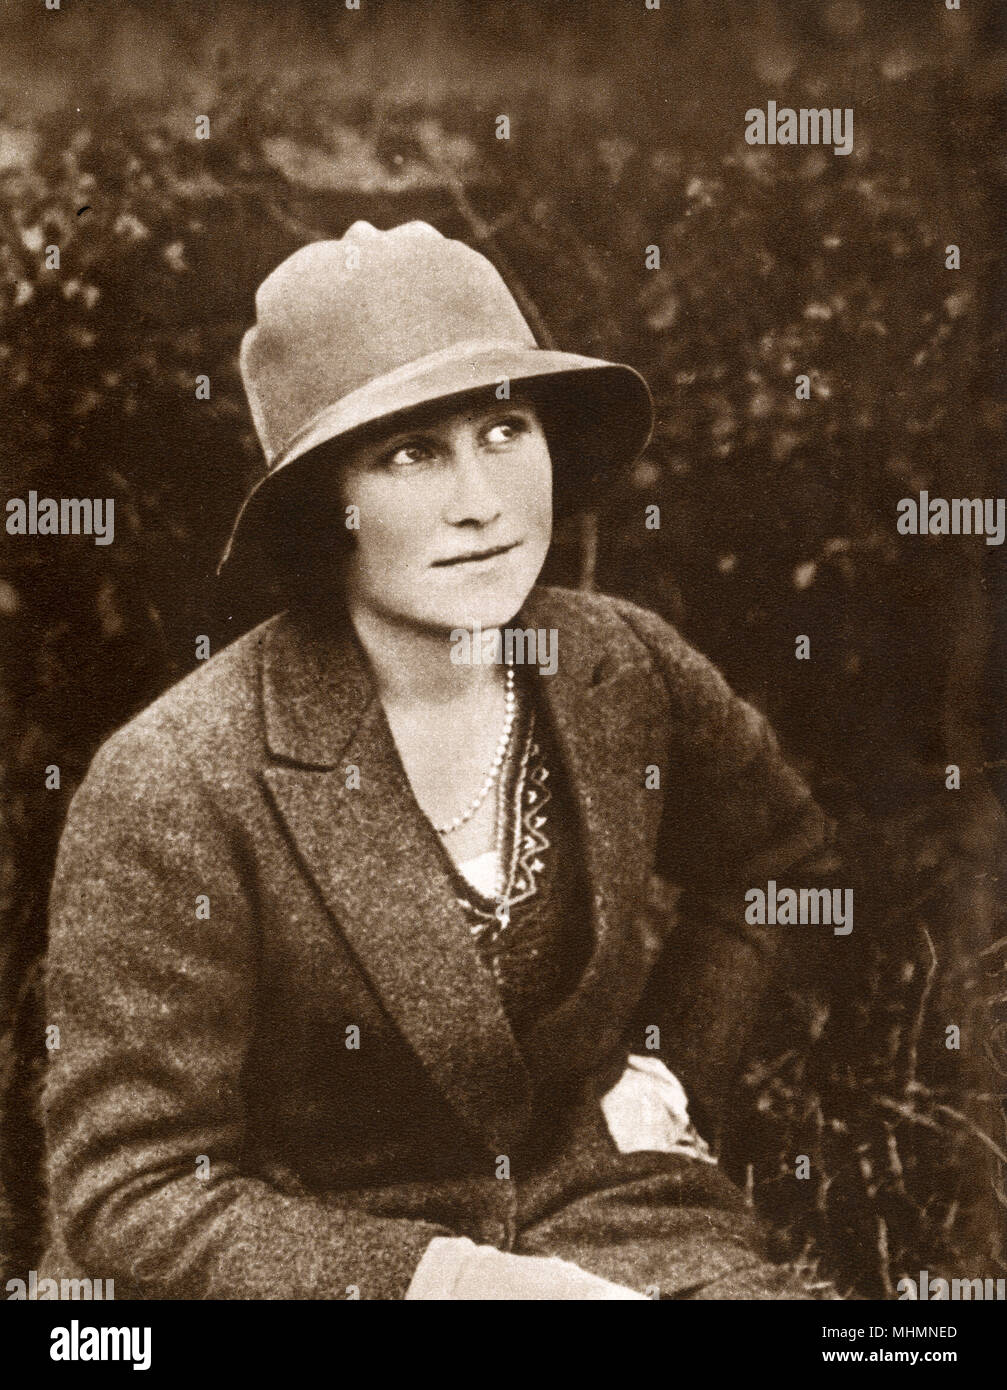 Lady Elizabeth Angela Marguerite Bowes-Lyon (1900-2002) - unconventional portrait taken a shoot at Glamis Castle.     Date: 1922 - Stock Image